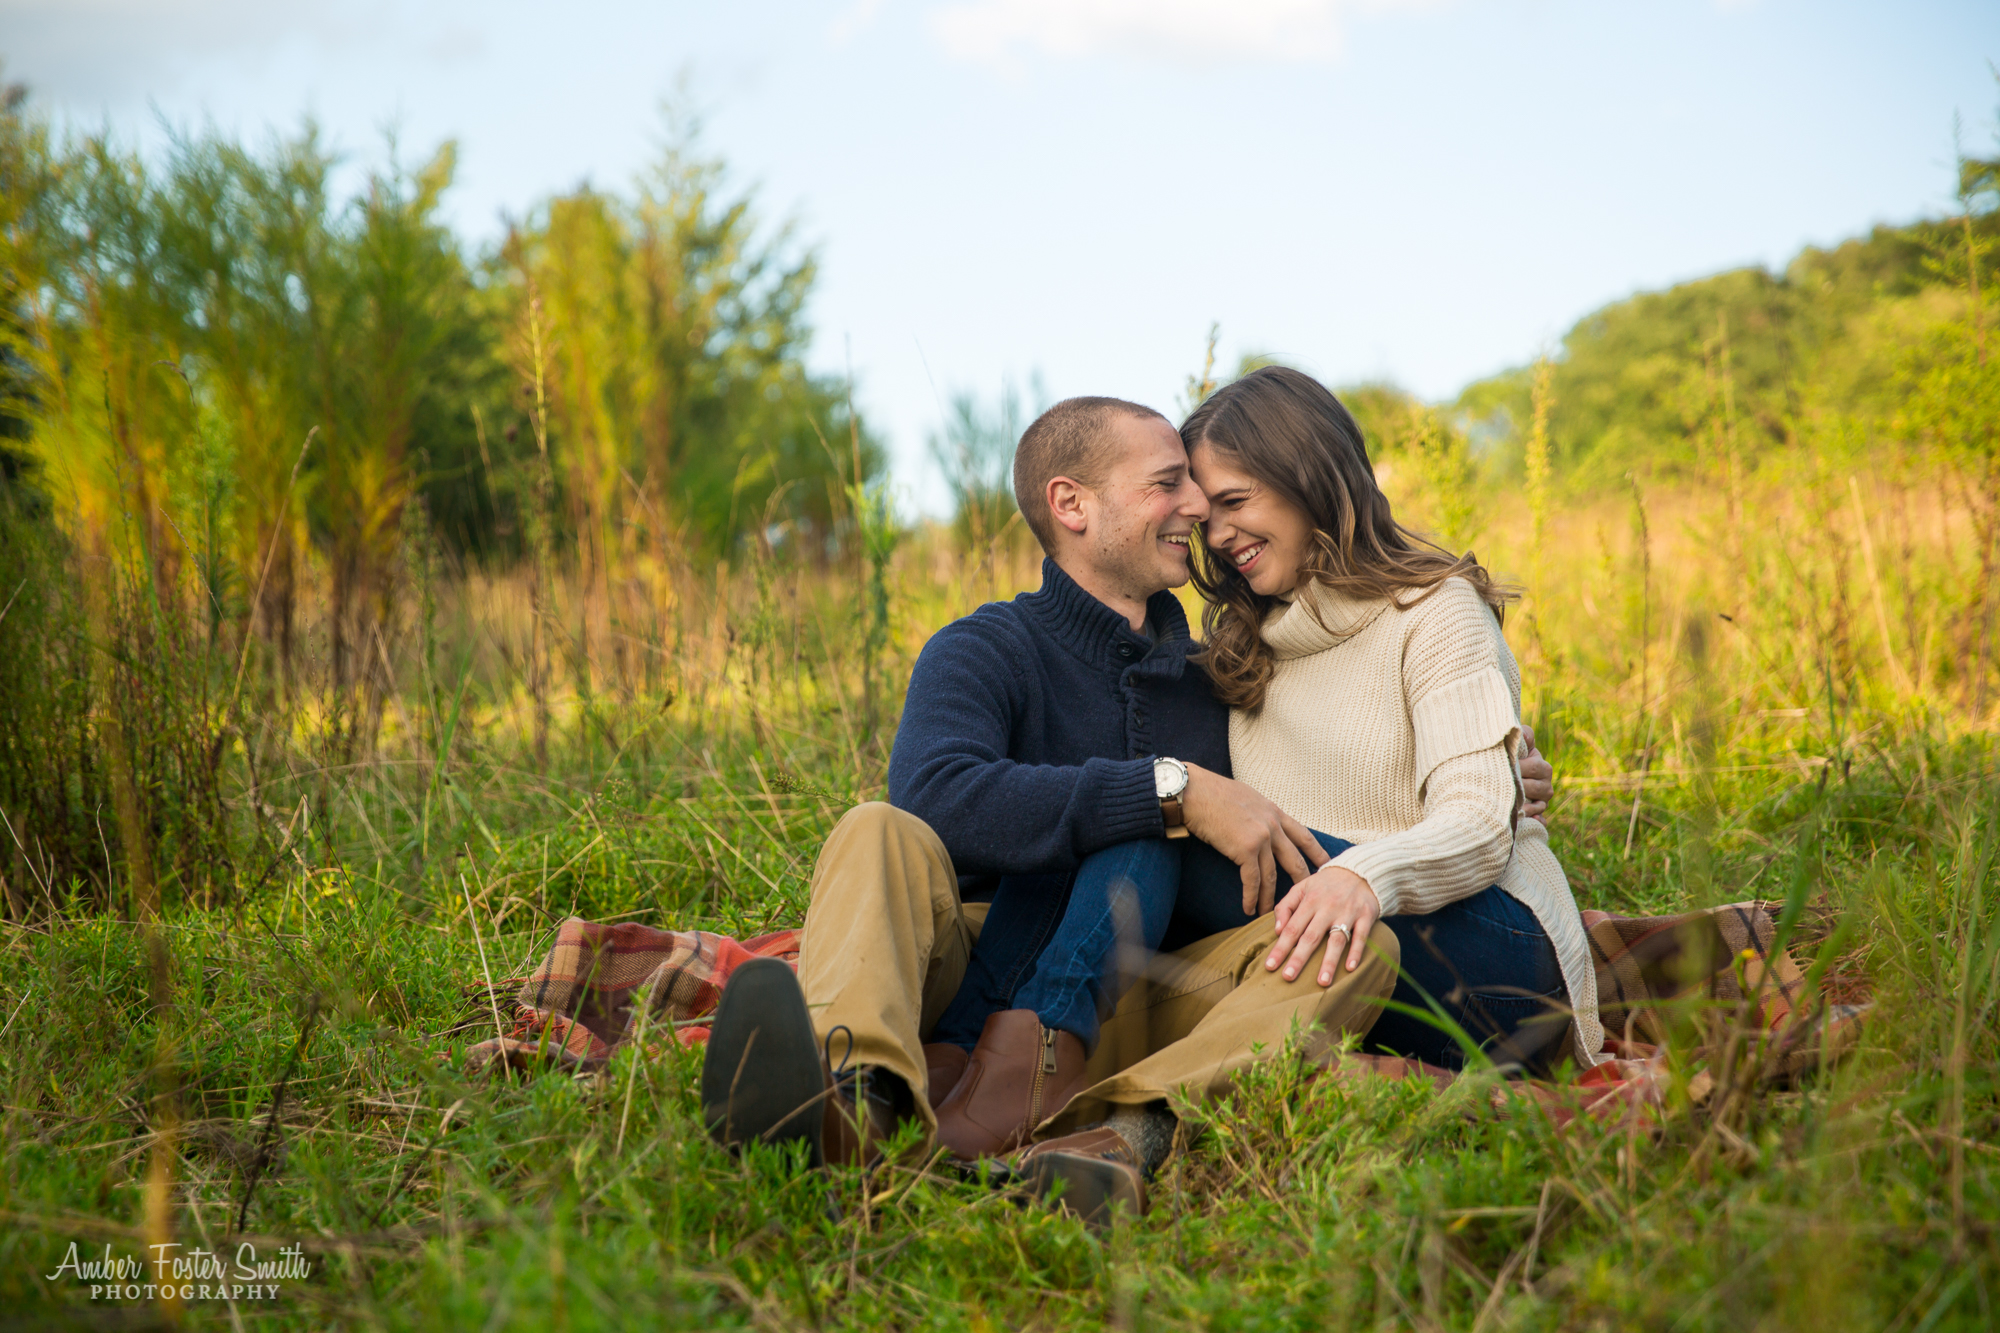 Amber Foster Smith Photography - Holly Springs, NC | Raleigh Engagement and Wedding Photographer